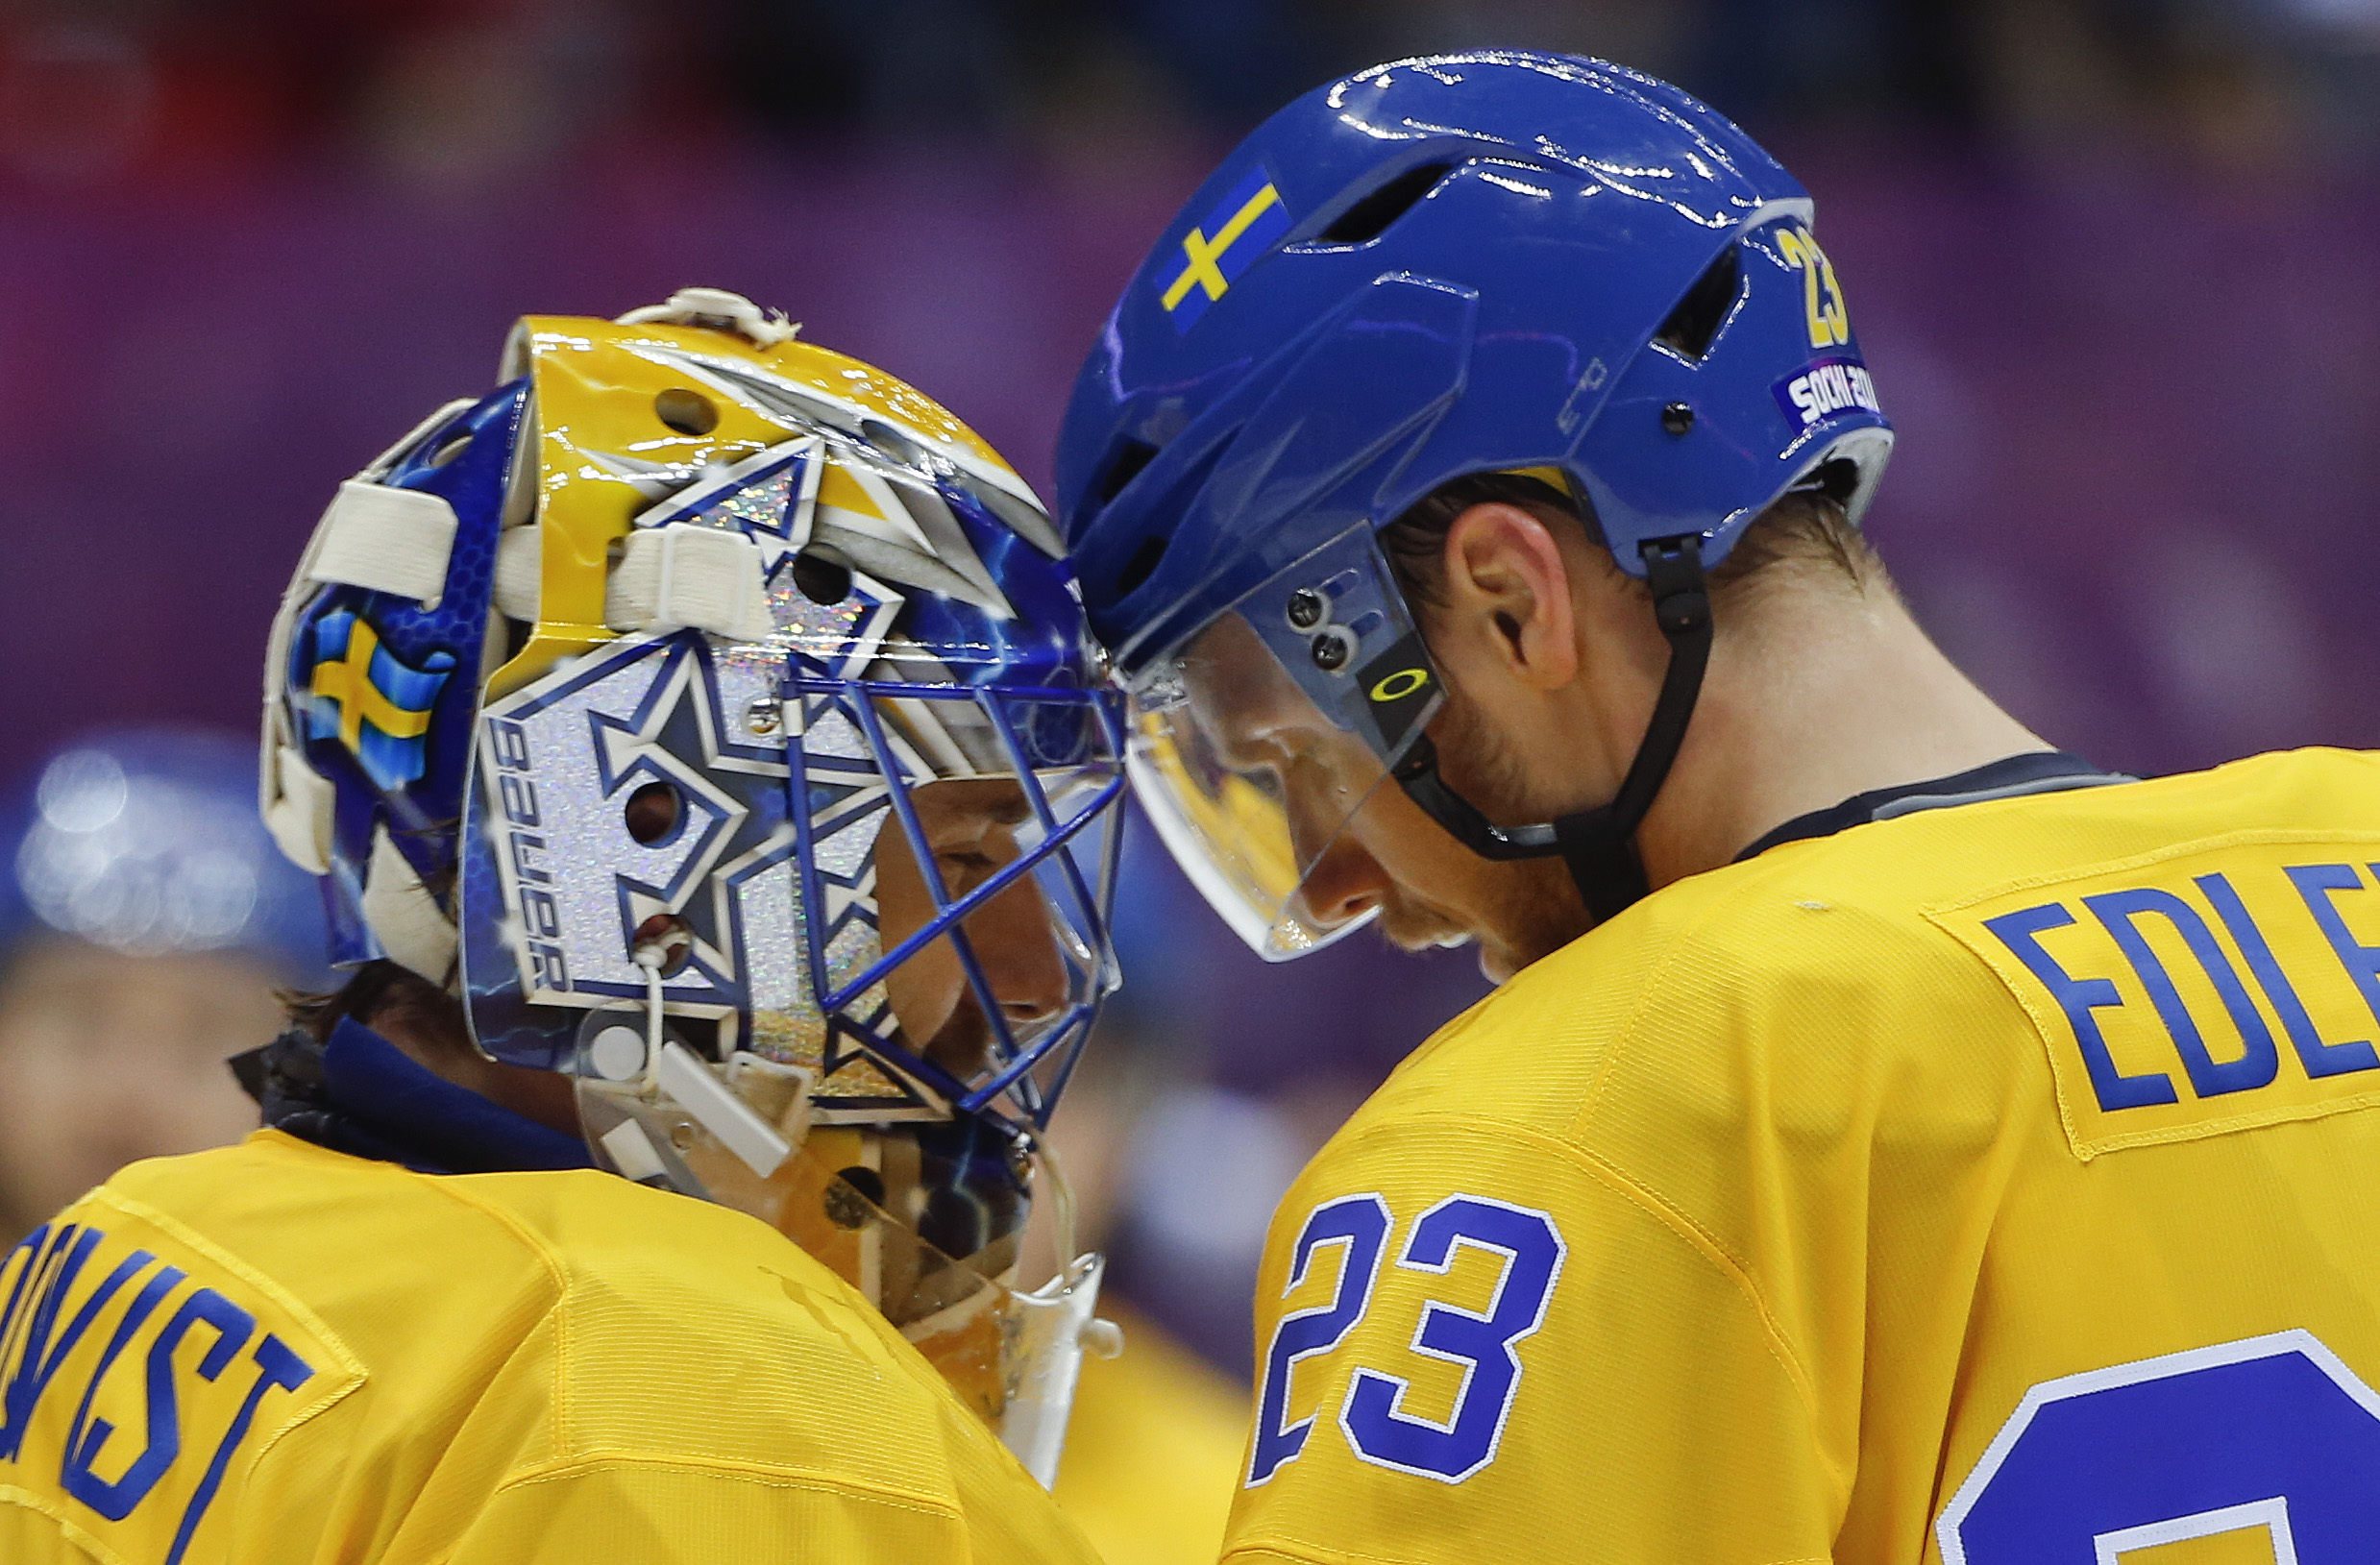 Sweden defenseman Alexander Edler congratulates goaltender Henrik Lundqvist on a shutout against Slovenia at the end of a men's quarterfinal ice hockey game at the 2014 Winter Olympics, Wednesday, Feb. 19, 2014, in Sochi, Russia. (AP Photo/Julio Cortez)